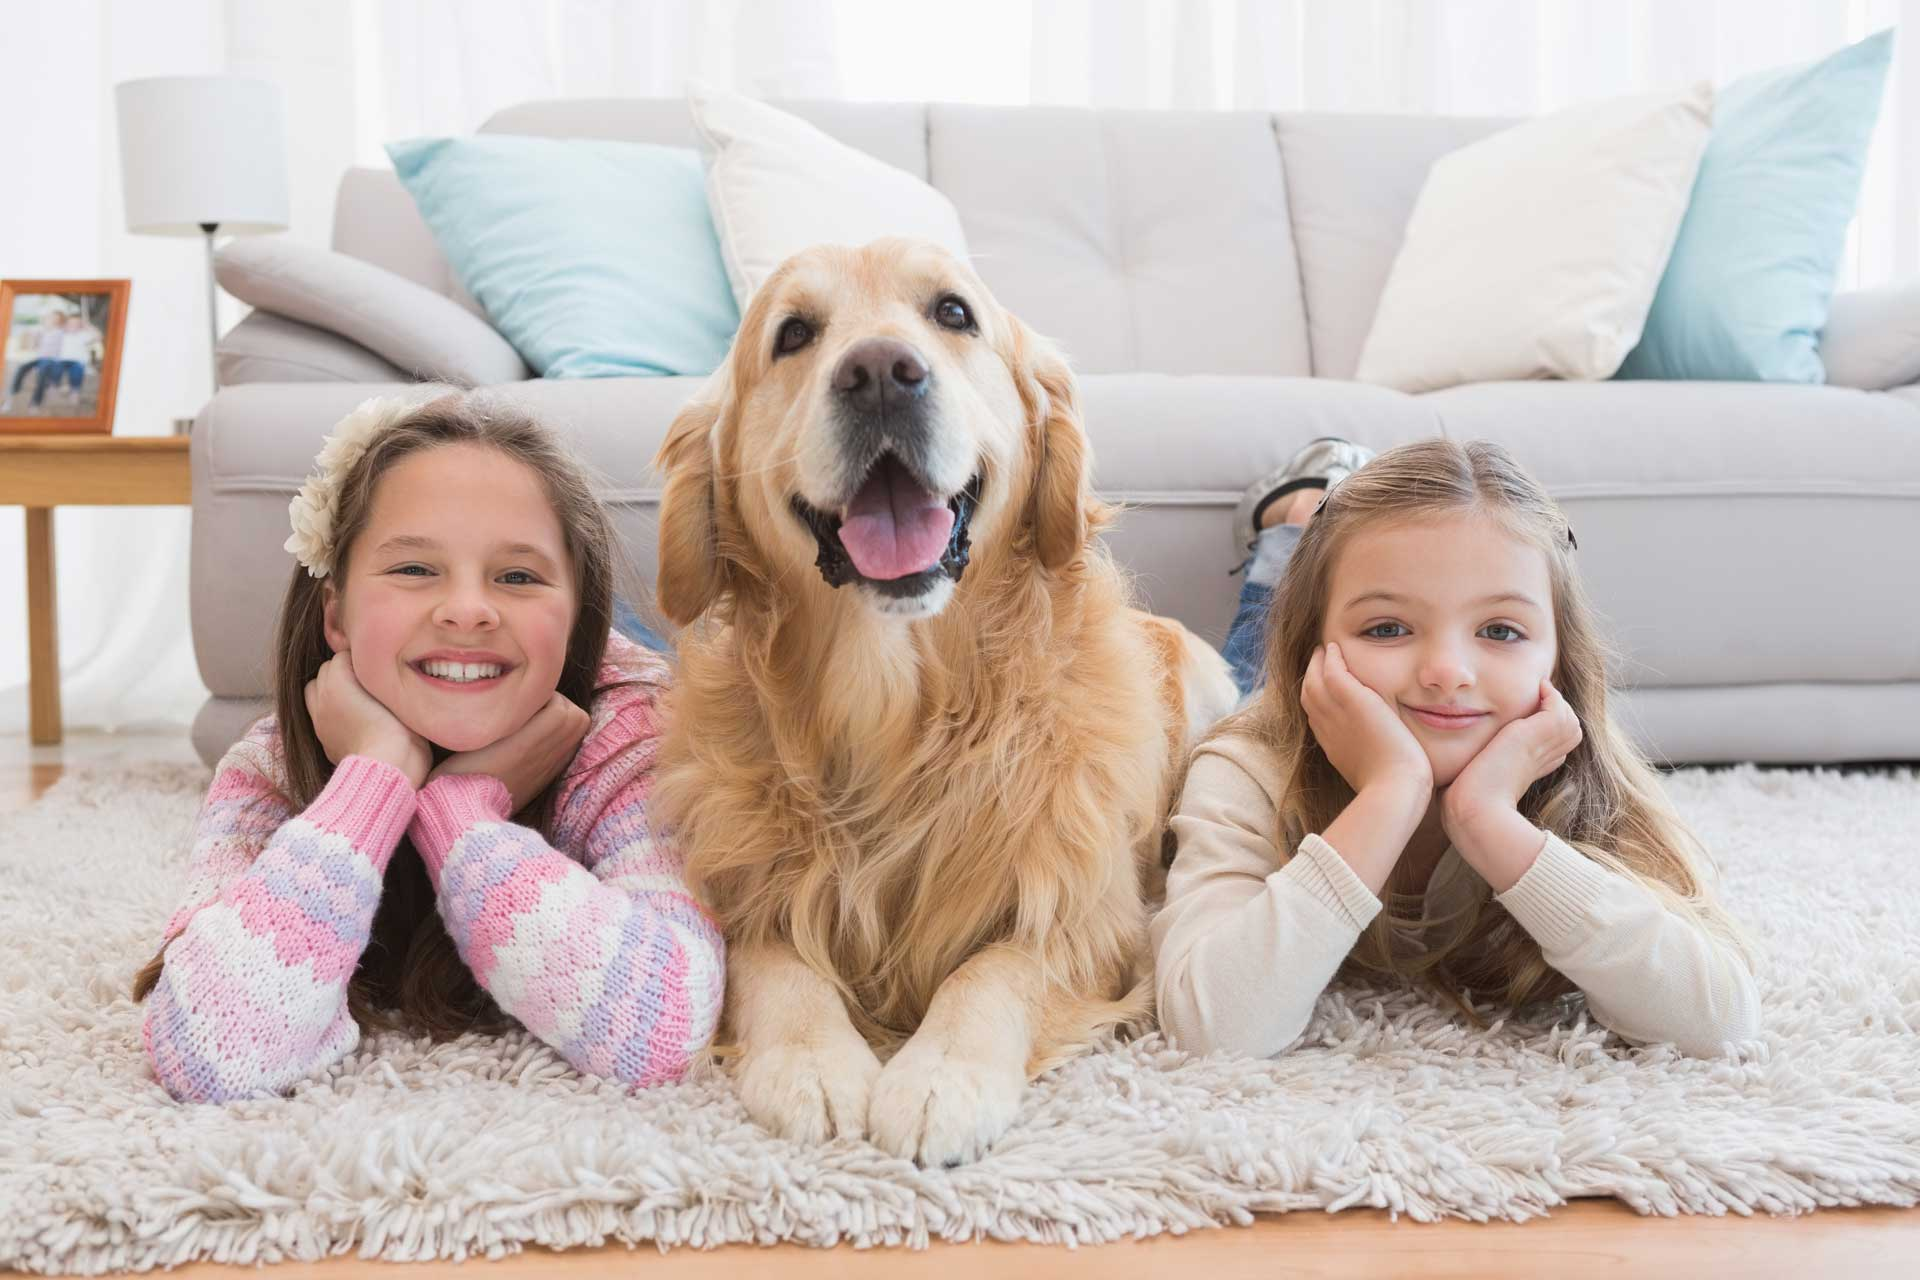 Leesburg Rug Cleaner by Carpet Keepers Eco-friendly rug cleaning